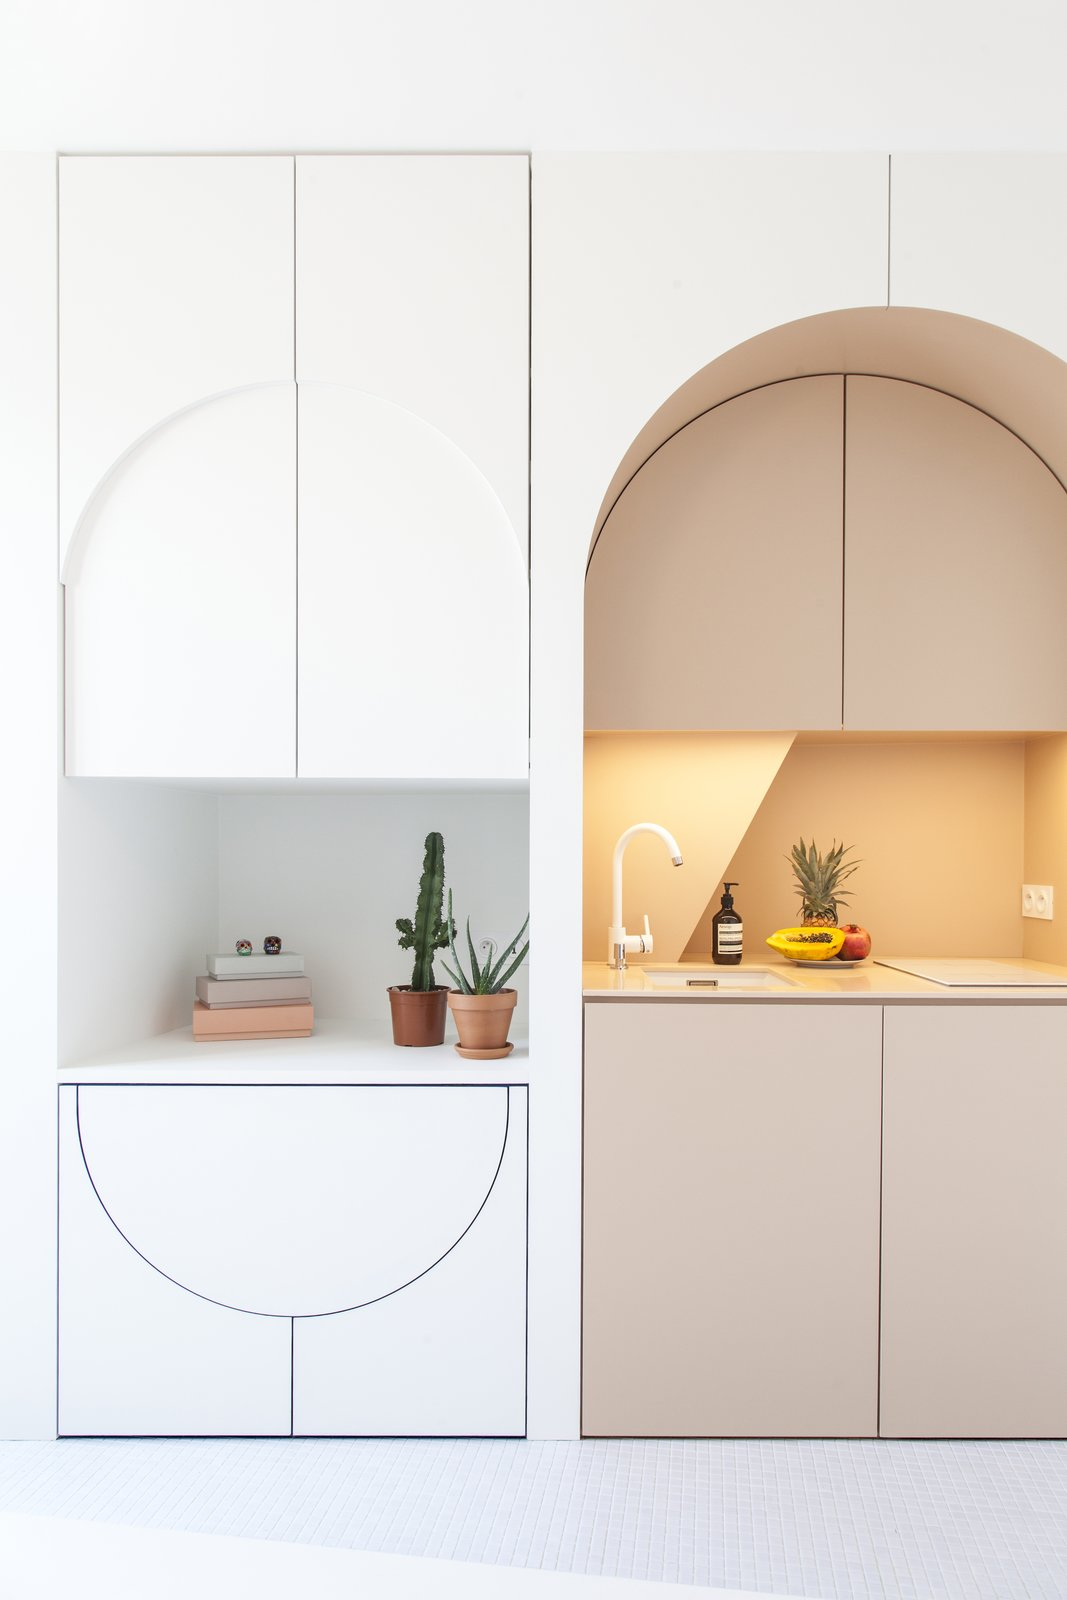 The clever design includes a hidden dining table, stools, and a fridge.